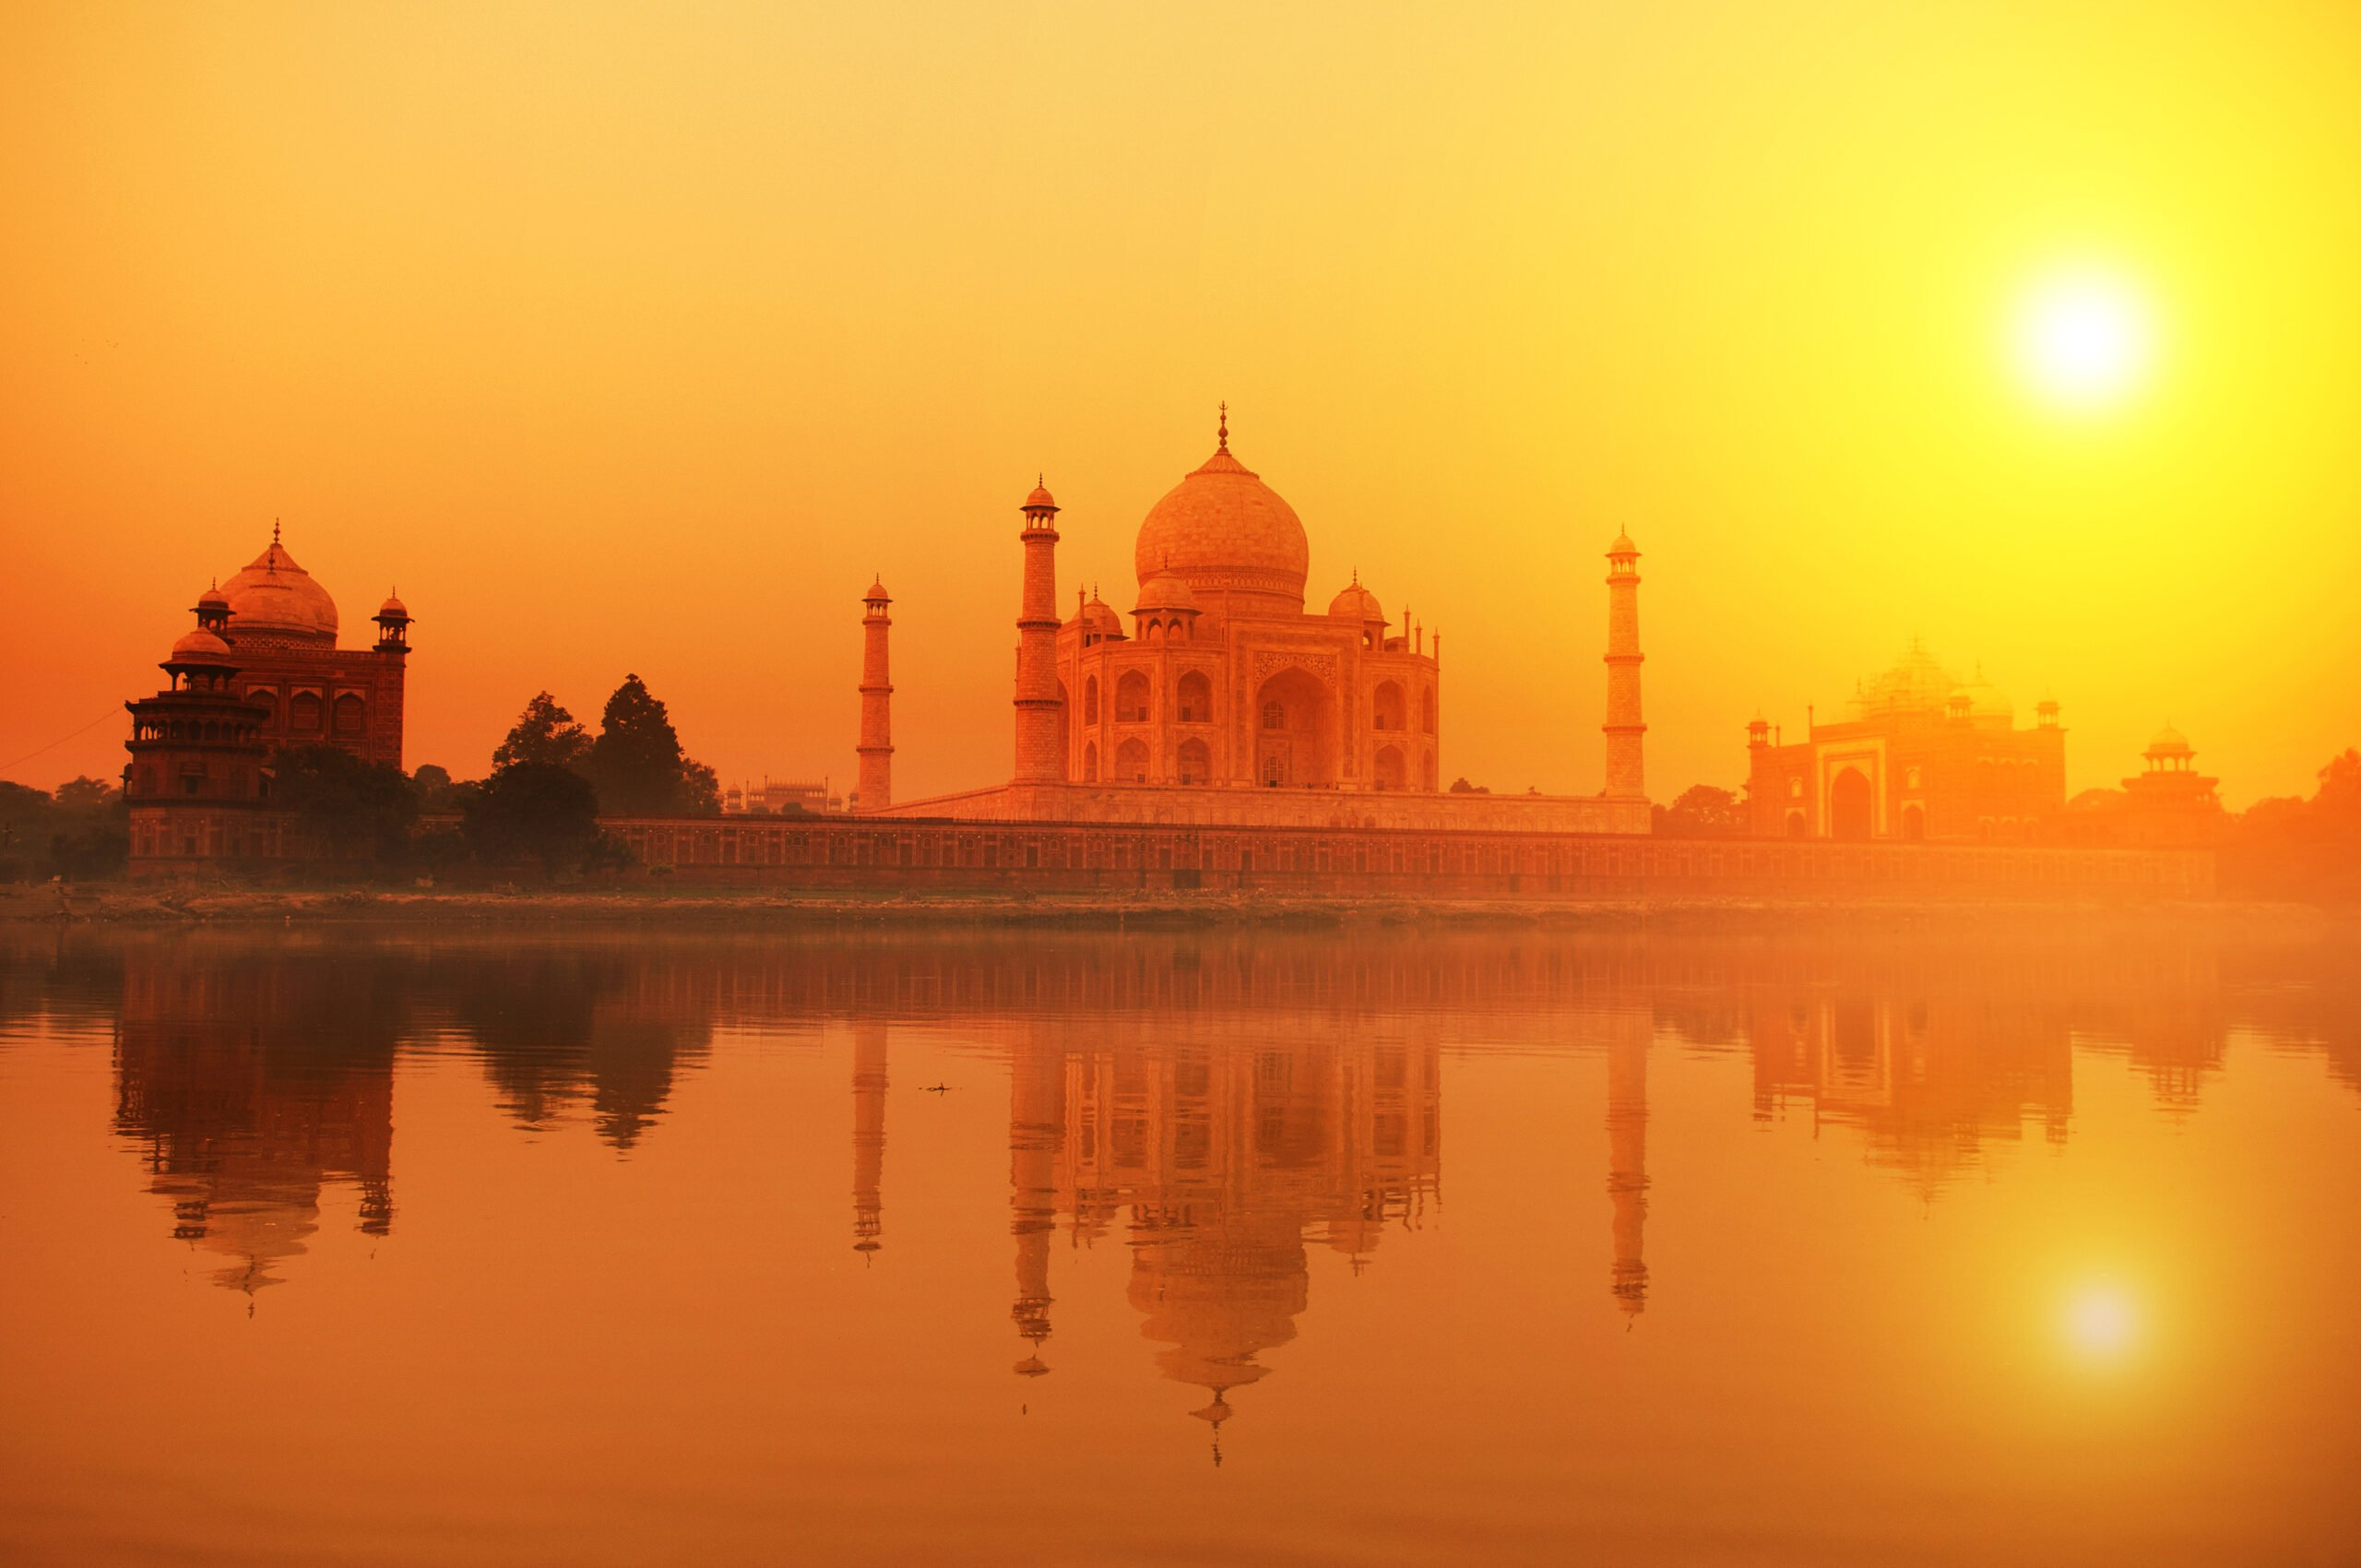 Learn About Many Mysteries And Hidden Secrets About The Taj Mahal In Our Taj Mahal & Wonders Of Agra Tour